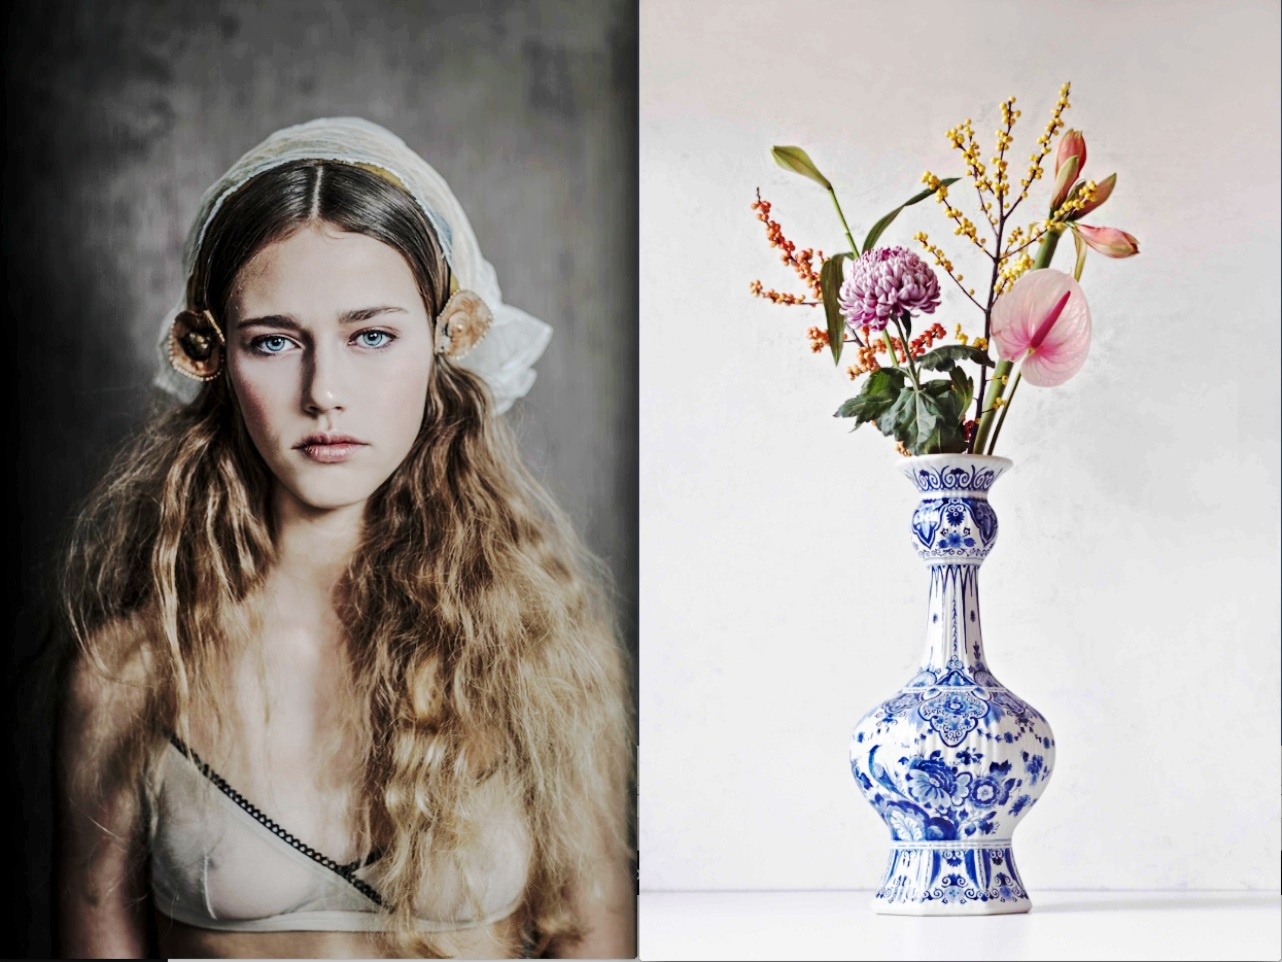 The wonderfully evocative images of Rachel Dubbe at Masterly and the traditional Delf pottery for which the Netherlands is famous.